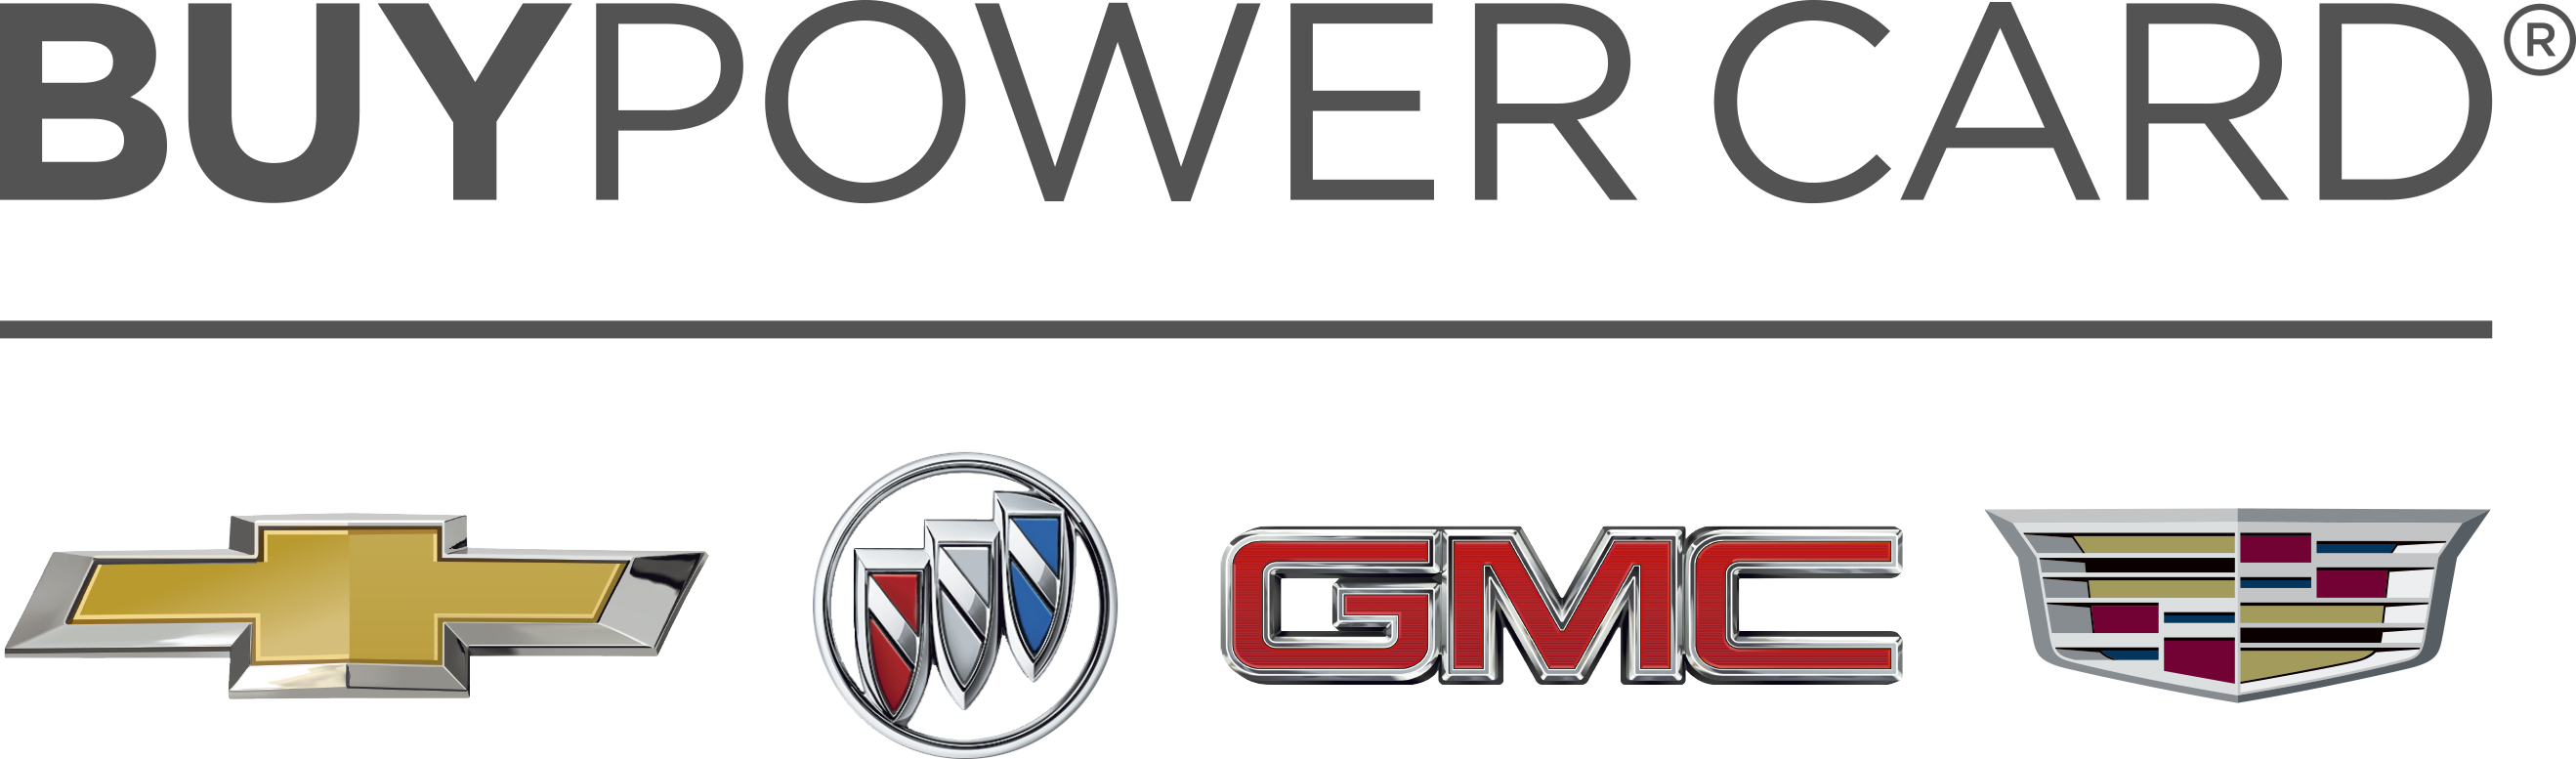 Coupon for Up to $75 Statement Credit for New BuyPower Card® and GM Extended Family Cardmembers Up to a $75 Statement Credit for parts/service for NEW card members.